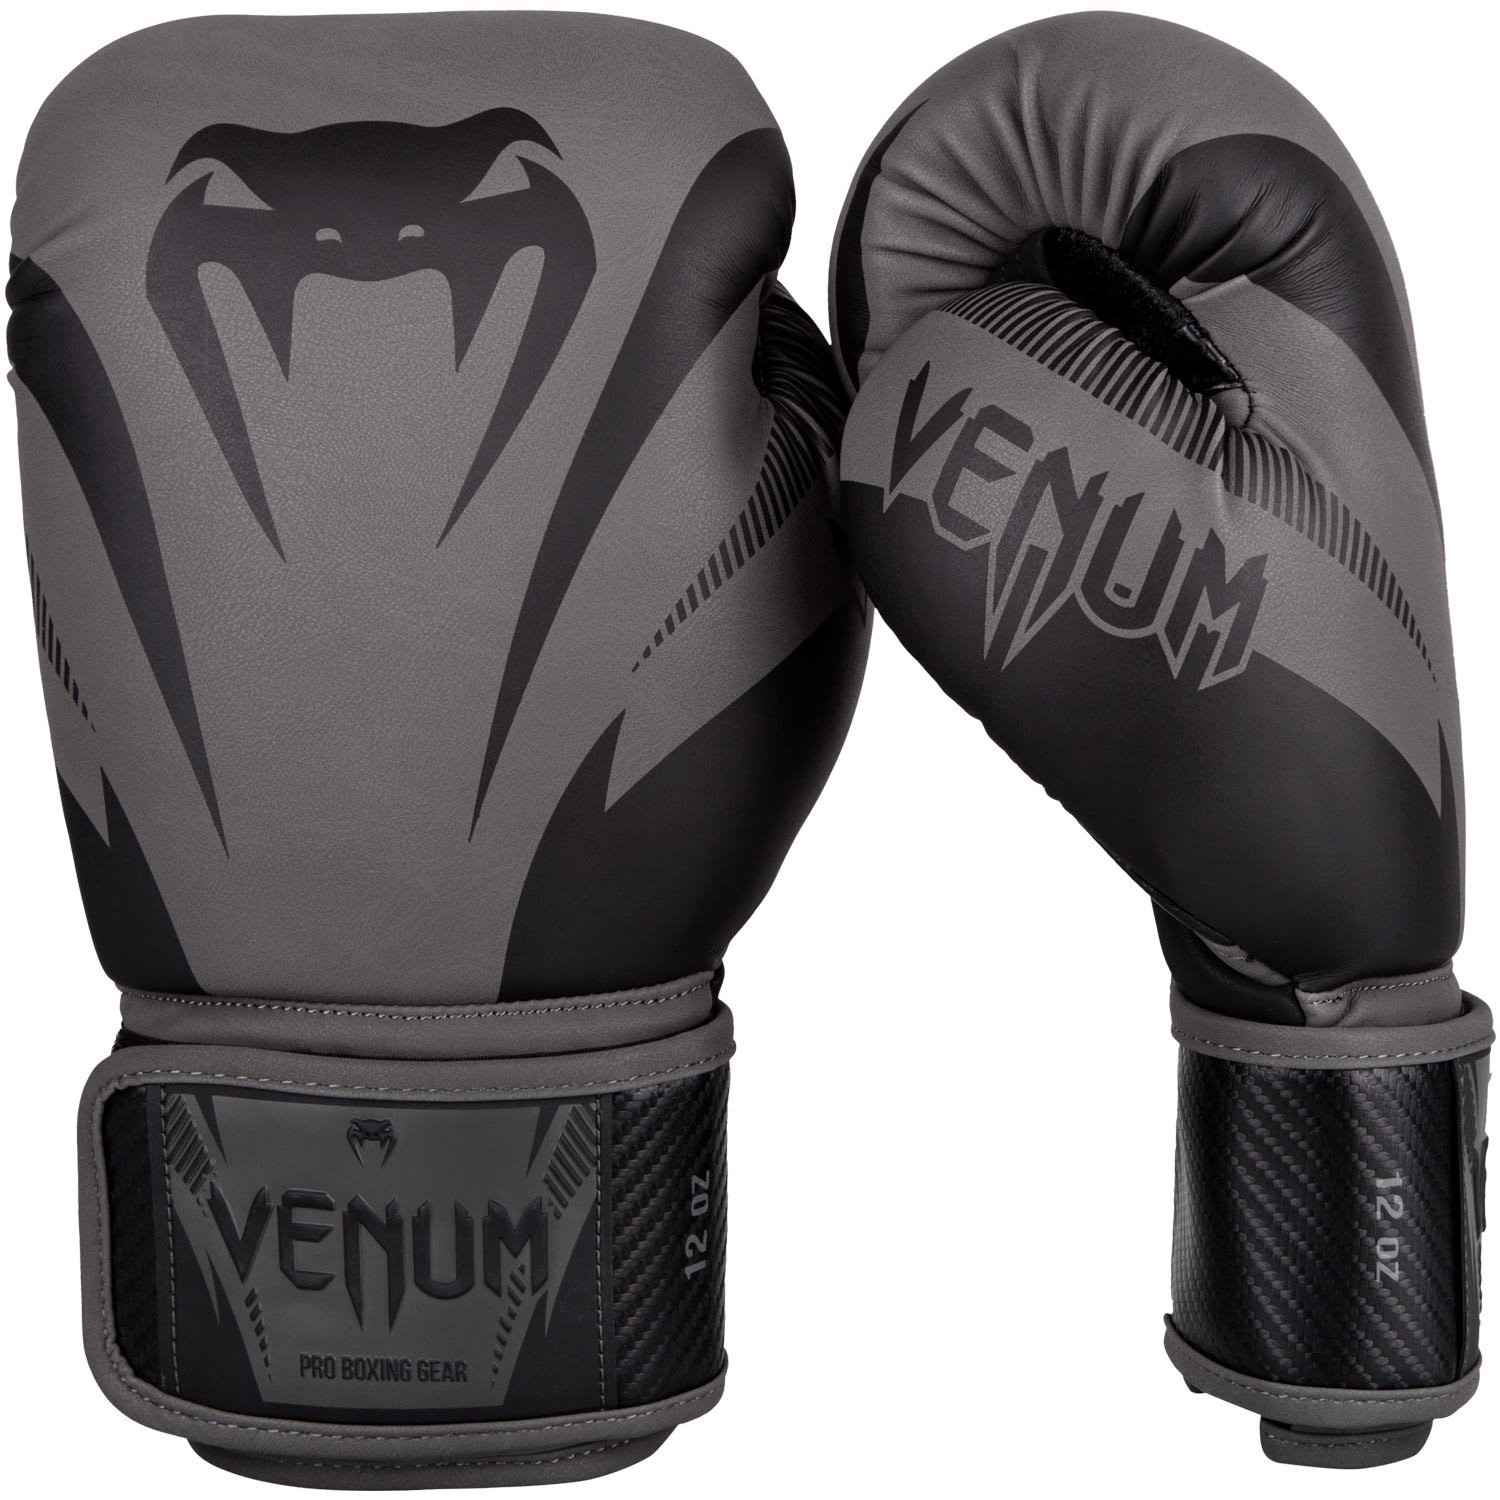 GĂNG TAY VENUM IMPACT BOXING GLOVES - GREY/BLACK